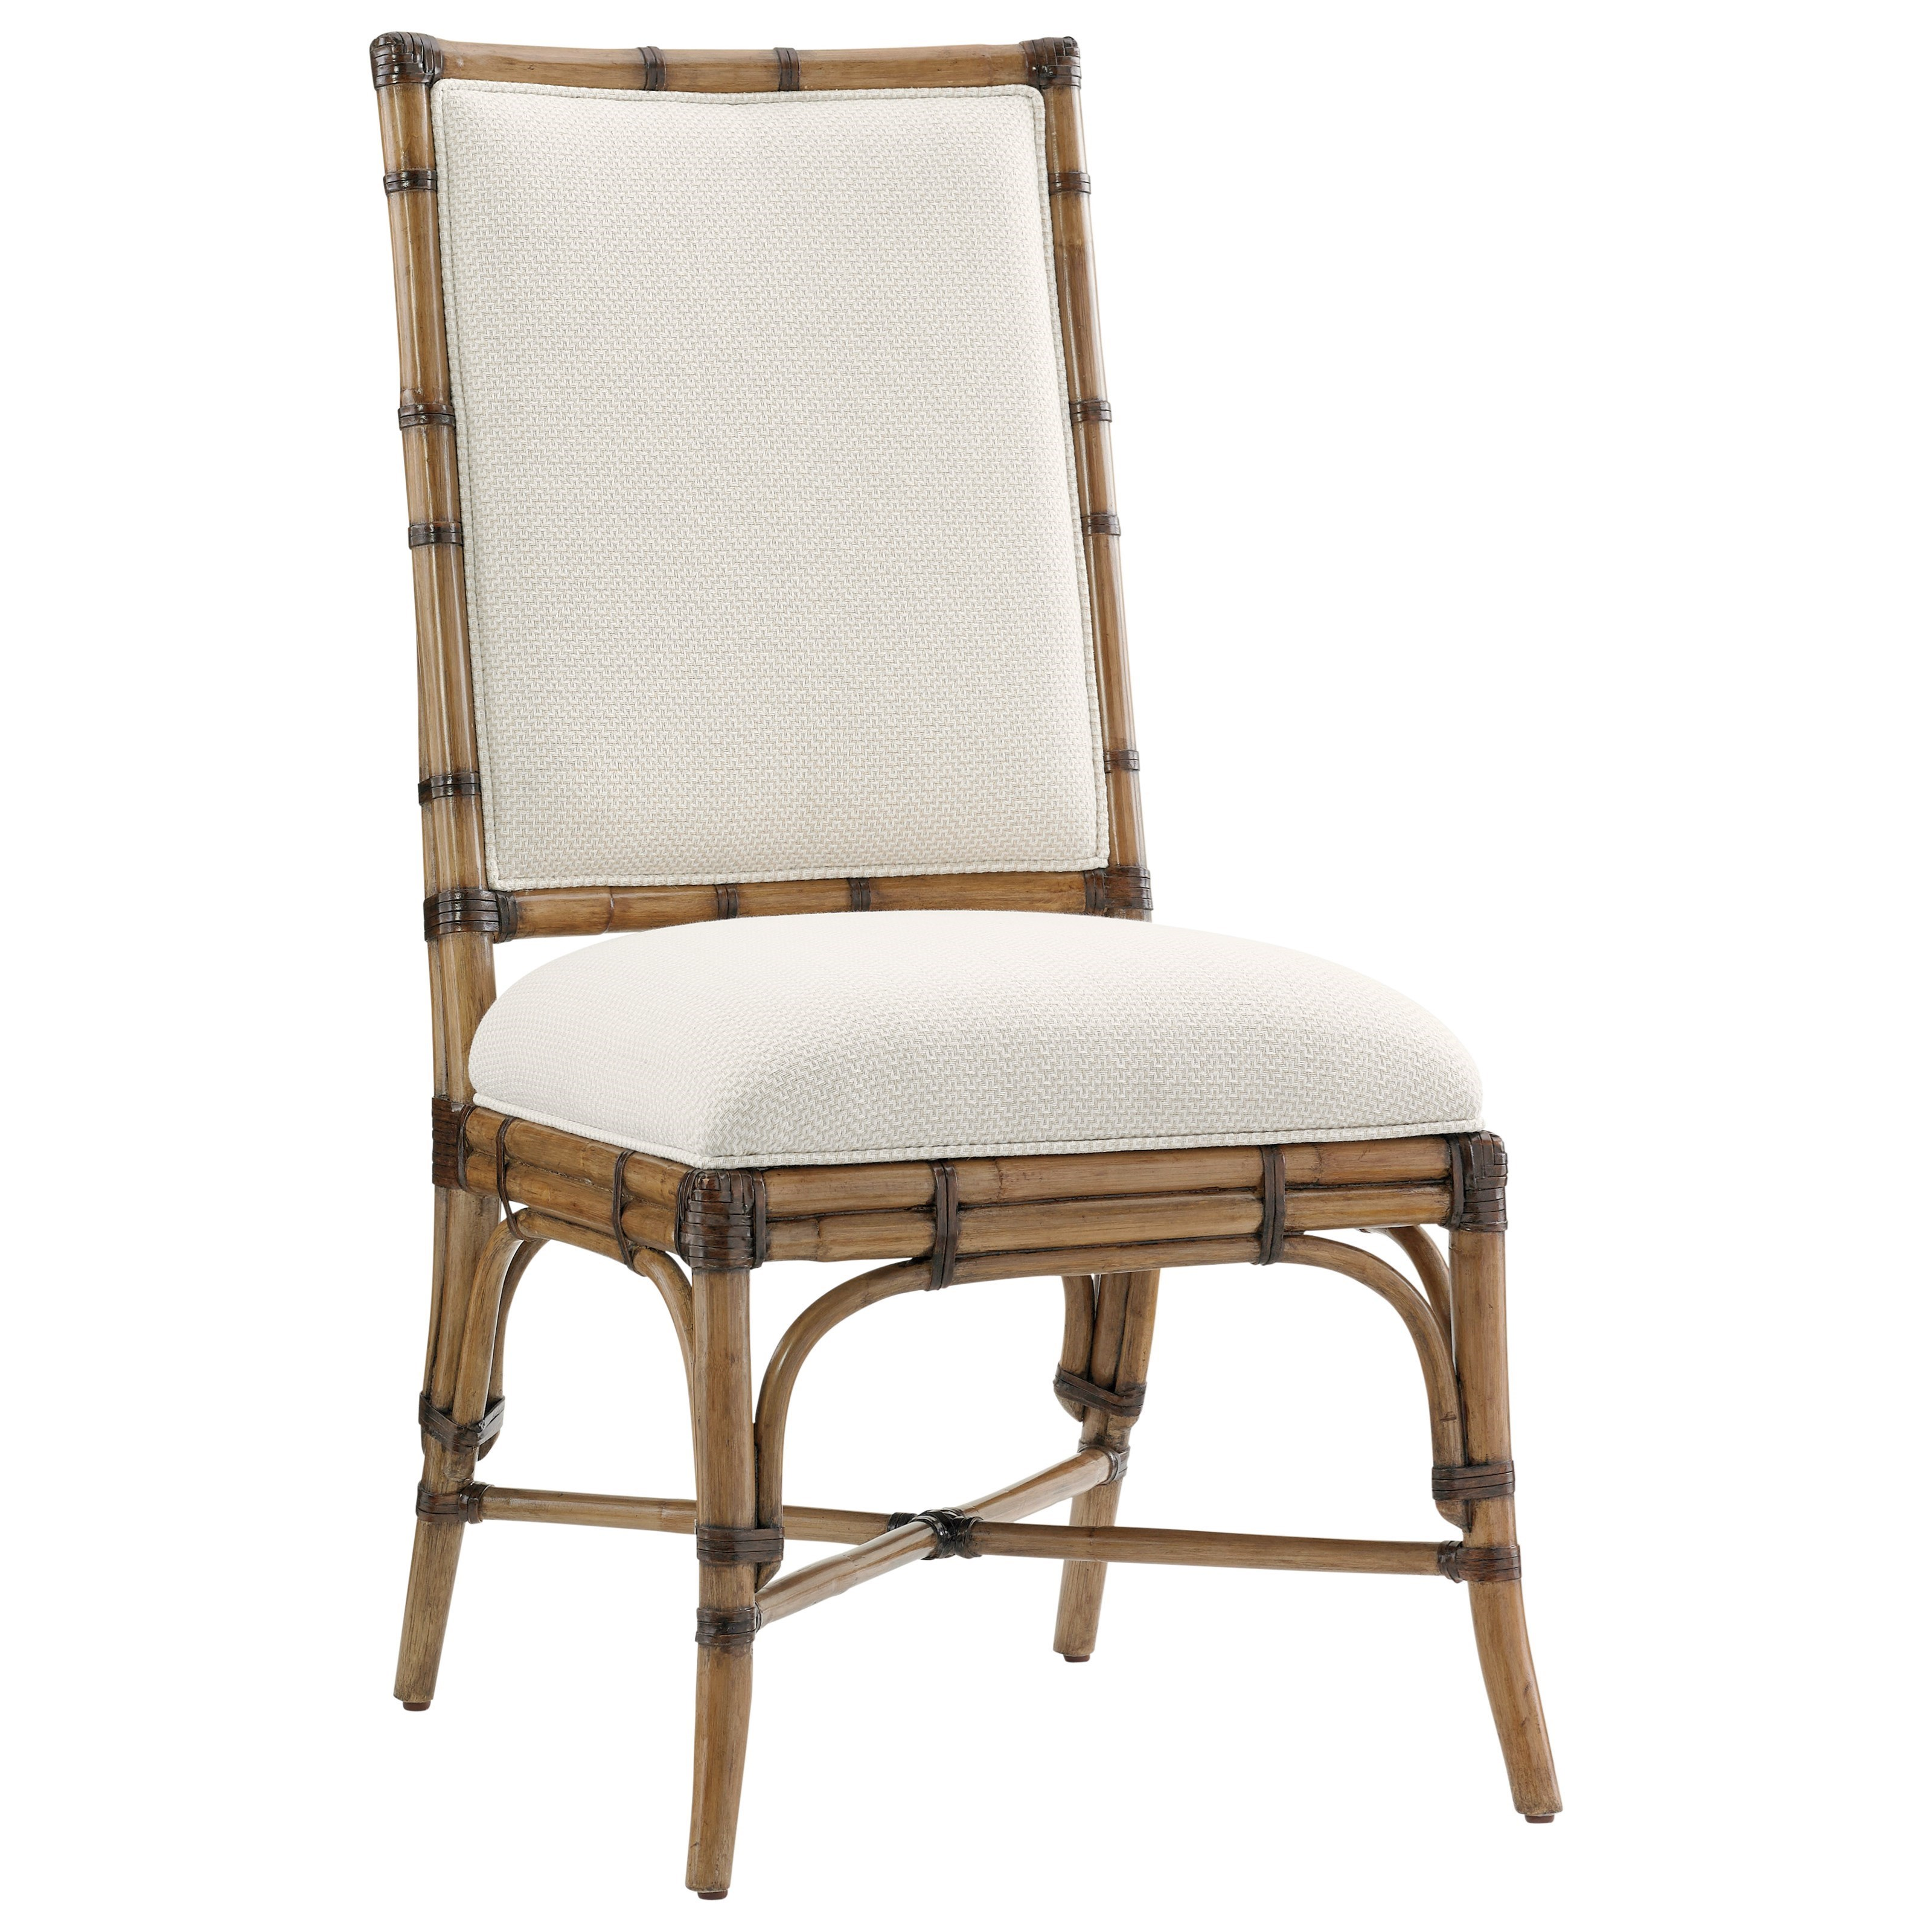 Tommy Bahama Home Twin Palms Summer Isle Side Chair (Married Fabric) - Item Number: 558-882-01